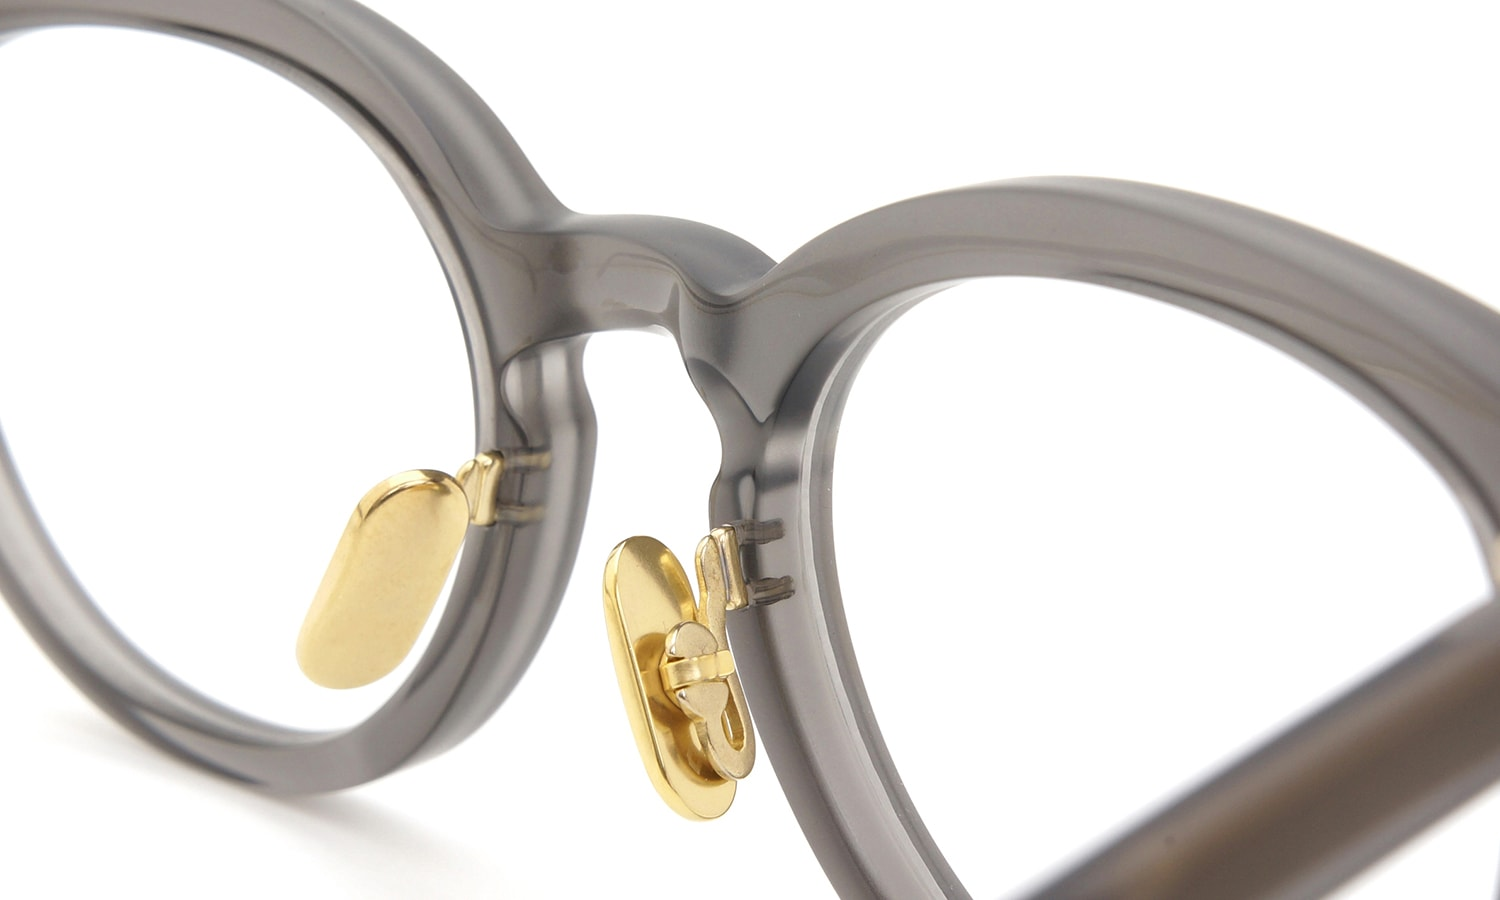 OG × OLIVER GOLDSMITH Re:PELOTA 48 リ:ペロタ 8